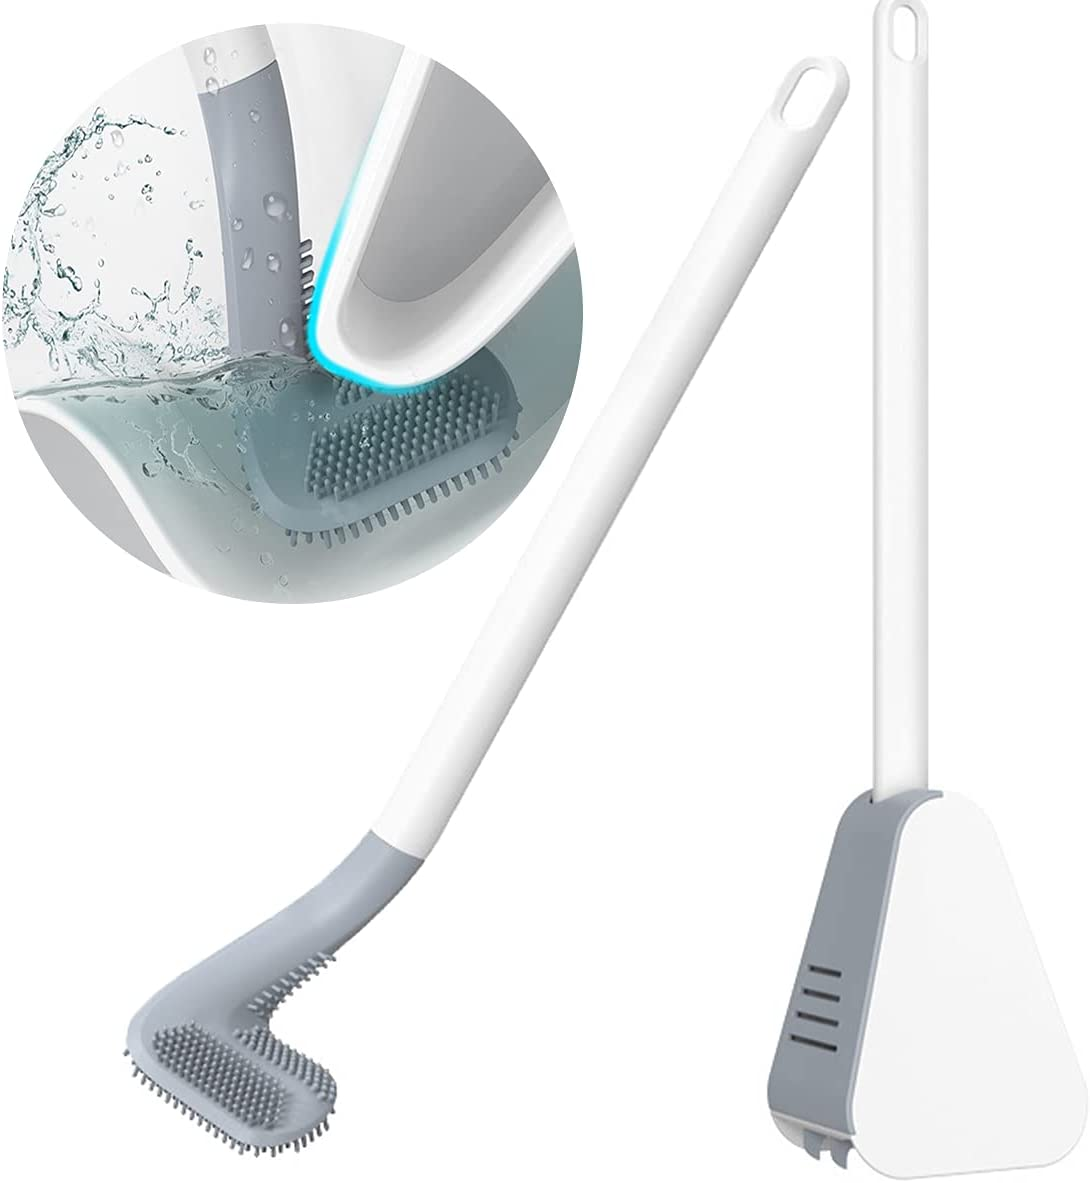 Silicone Toilet Brush Cleaner Bowl Popular popular Golf Be super welcome Holder and Toi Set